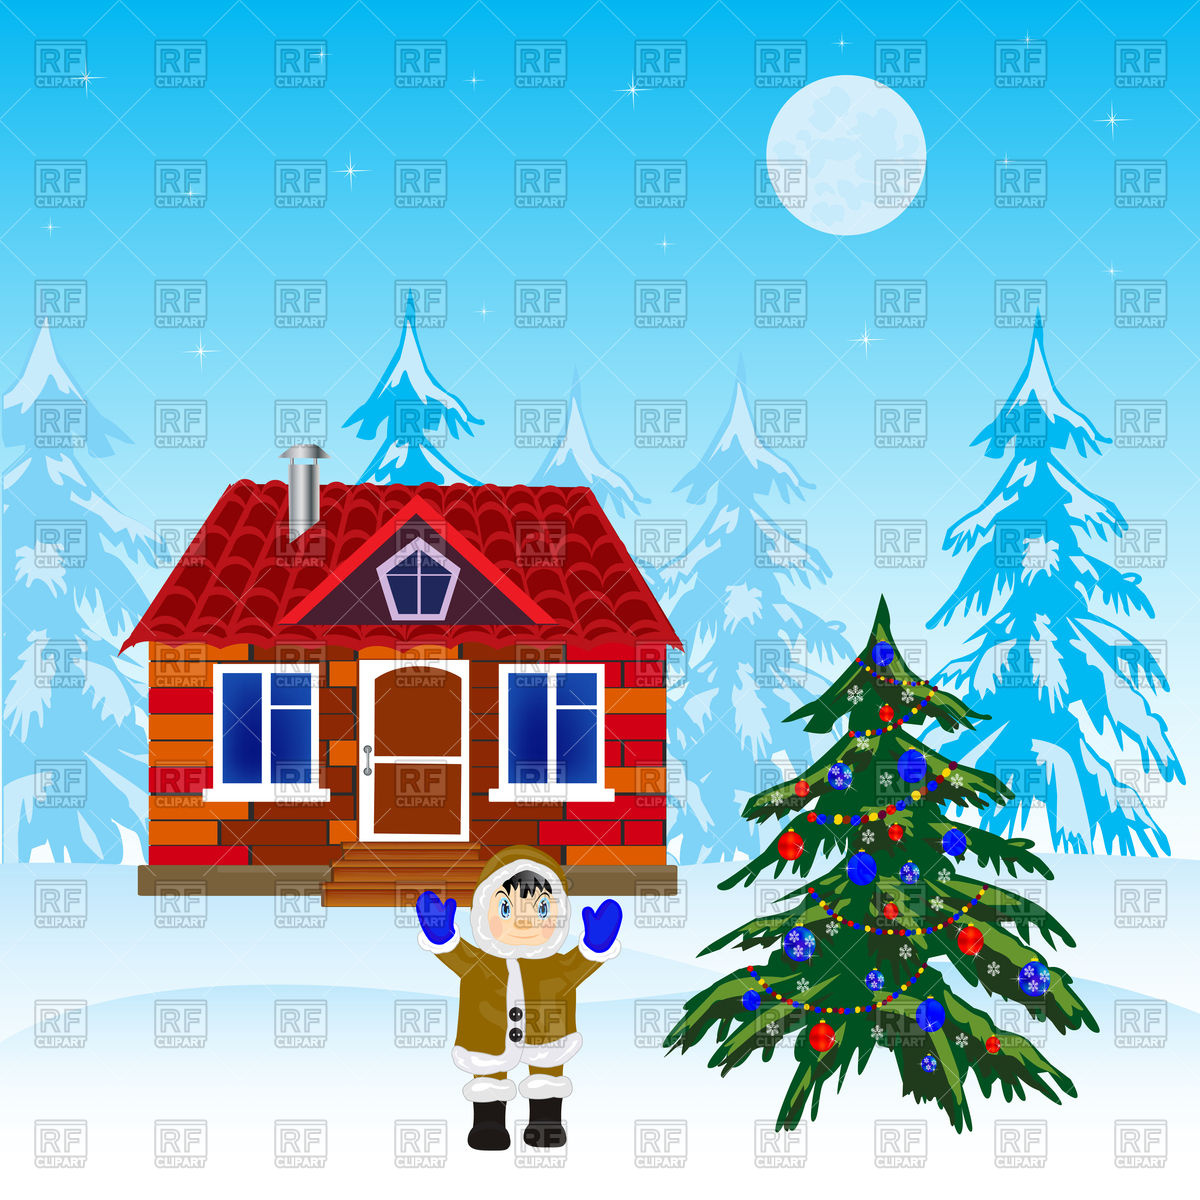 Christmas tree and house in winter wood Vector Image #91432.